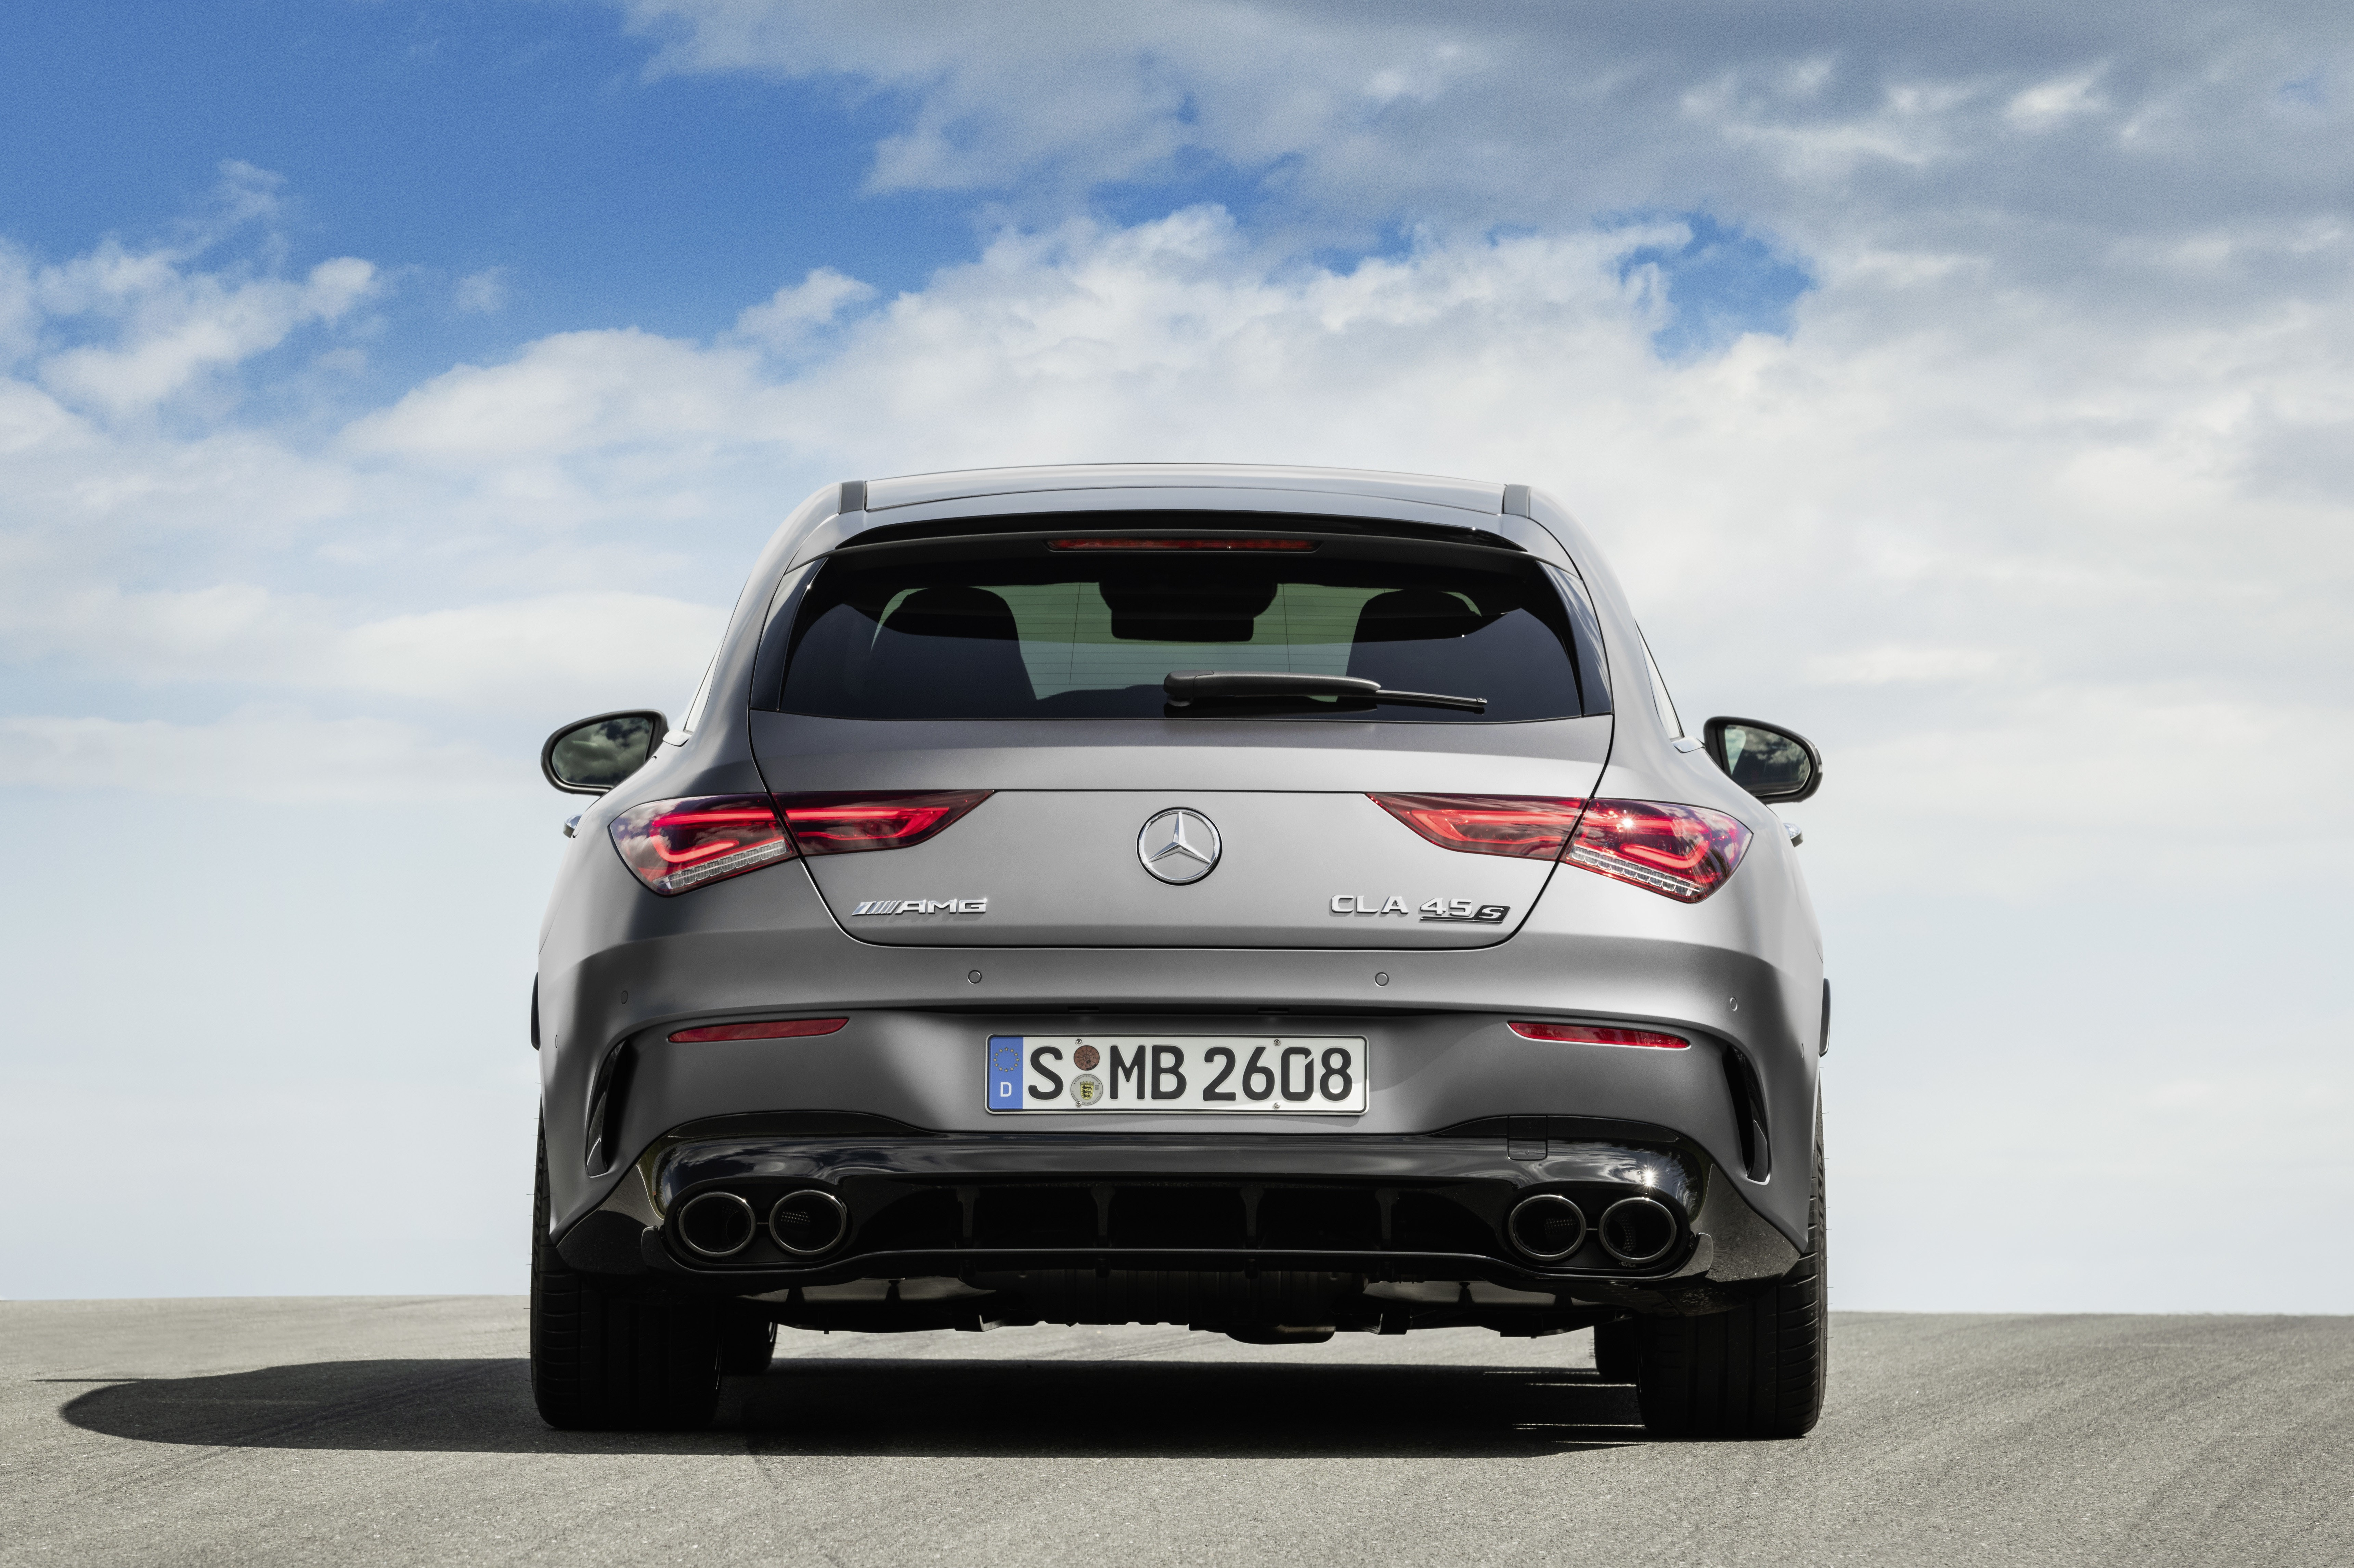 Mercedes-AMG CLA 45 S 4MATIC+ Shooting Brake (2019);Kraftstoffverbrauch kombiniert: 8,4-8,2 l/100 km; CO2-Emissionen kombiniert: 191-188 g/km*  Mercedes-AMG CLA 45 S 4MATIC+ Shooting Brake (2019);Fuel consumption combined: 8.4-8.2 l/100 km; Combined CO2 emissions: 191-188 g/km*